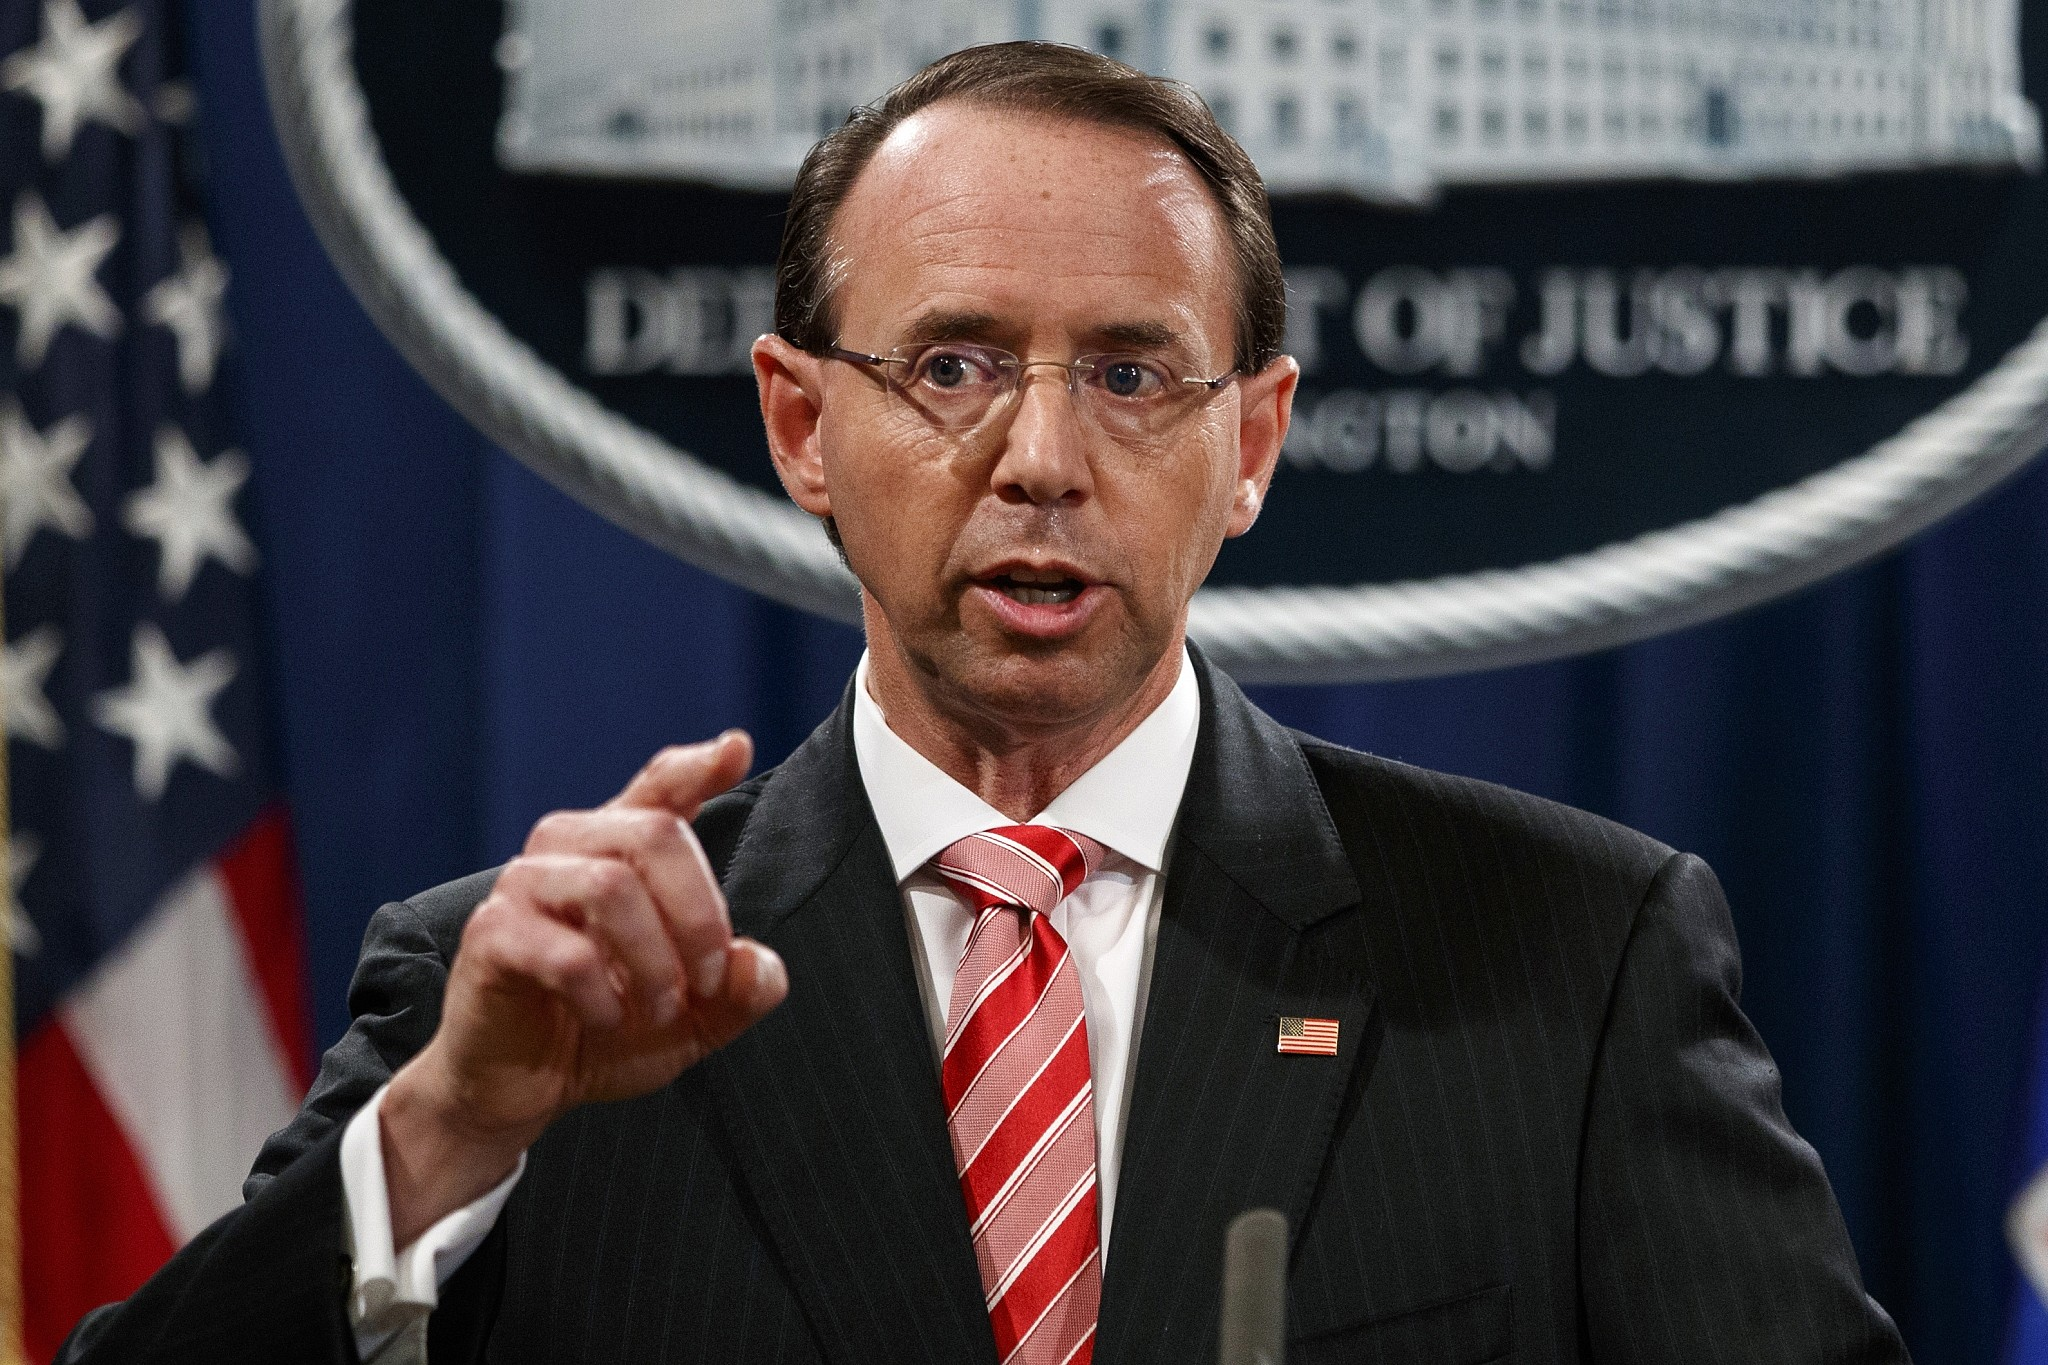 Image result for Rod Rosenstein, photos